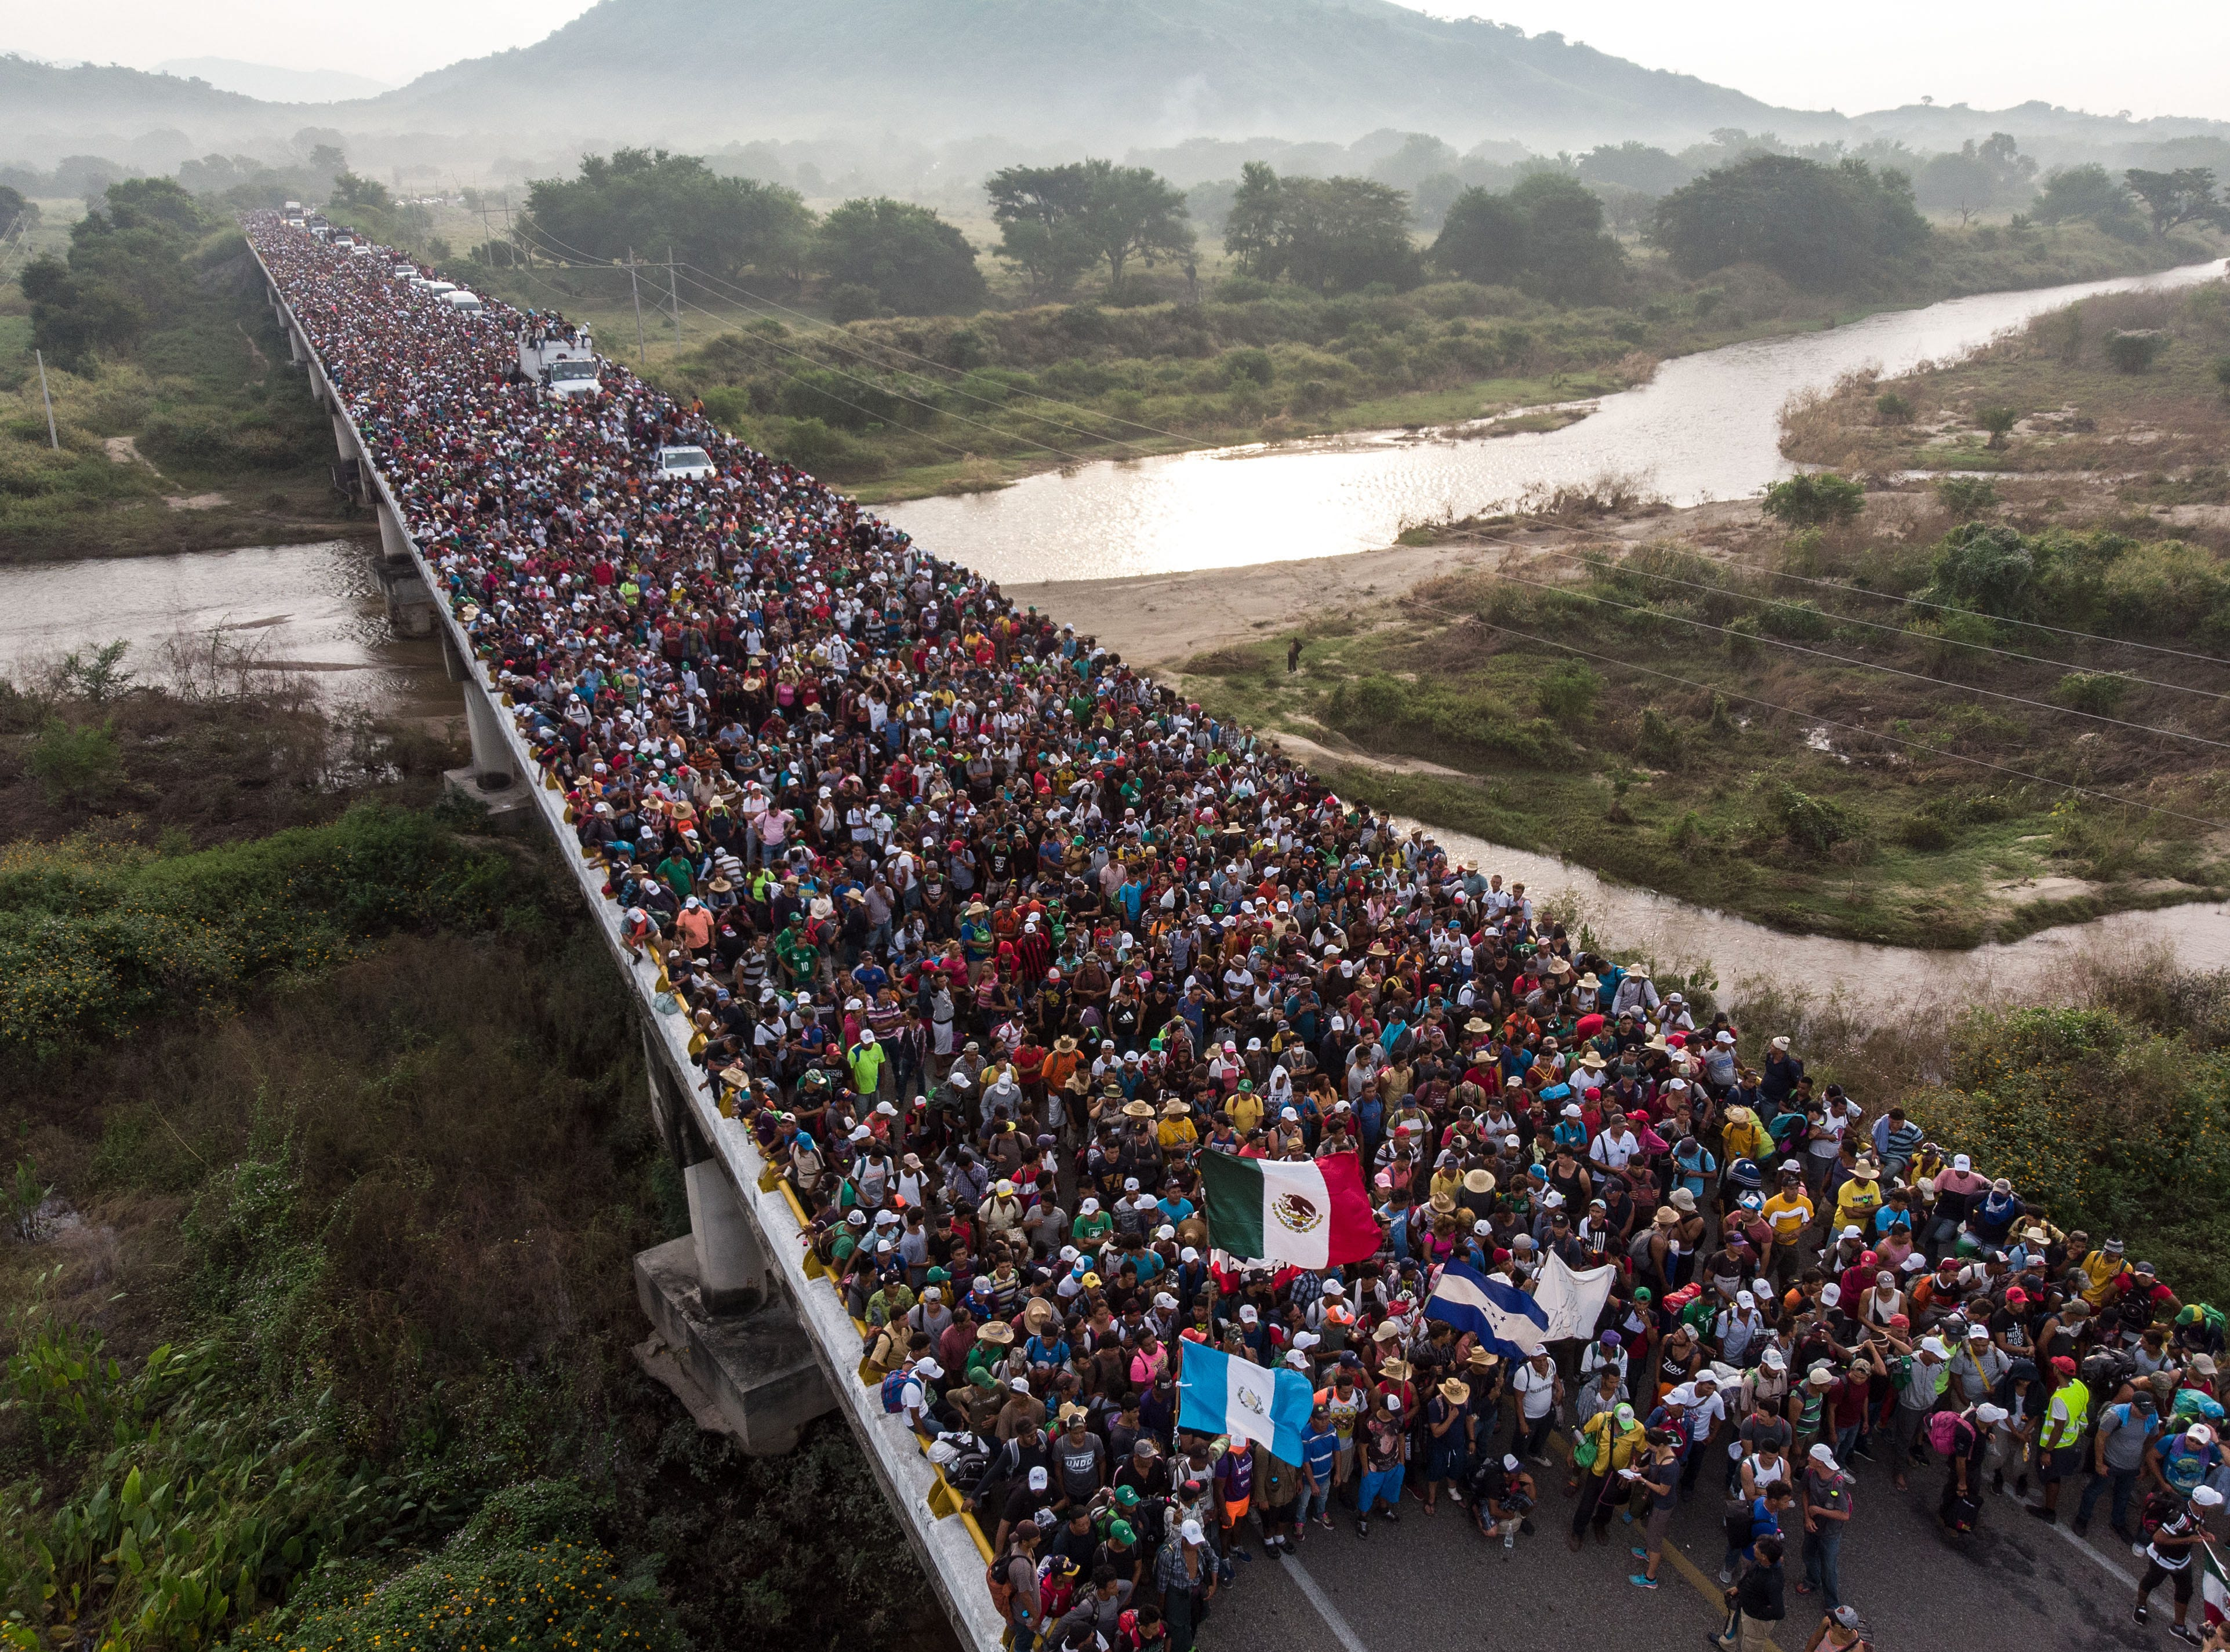 The U.S.-bound caravan of Honduran migrants leaves Arriaga en route to San Pedro Tapanatepec, in southern Mexico on Saturday, Oct. 27, 2018. Mexico on Friday announced it will offer Central American migrants medical care, education for their children and access to temporary jobs as long as they stay in two southern states.